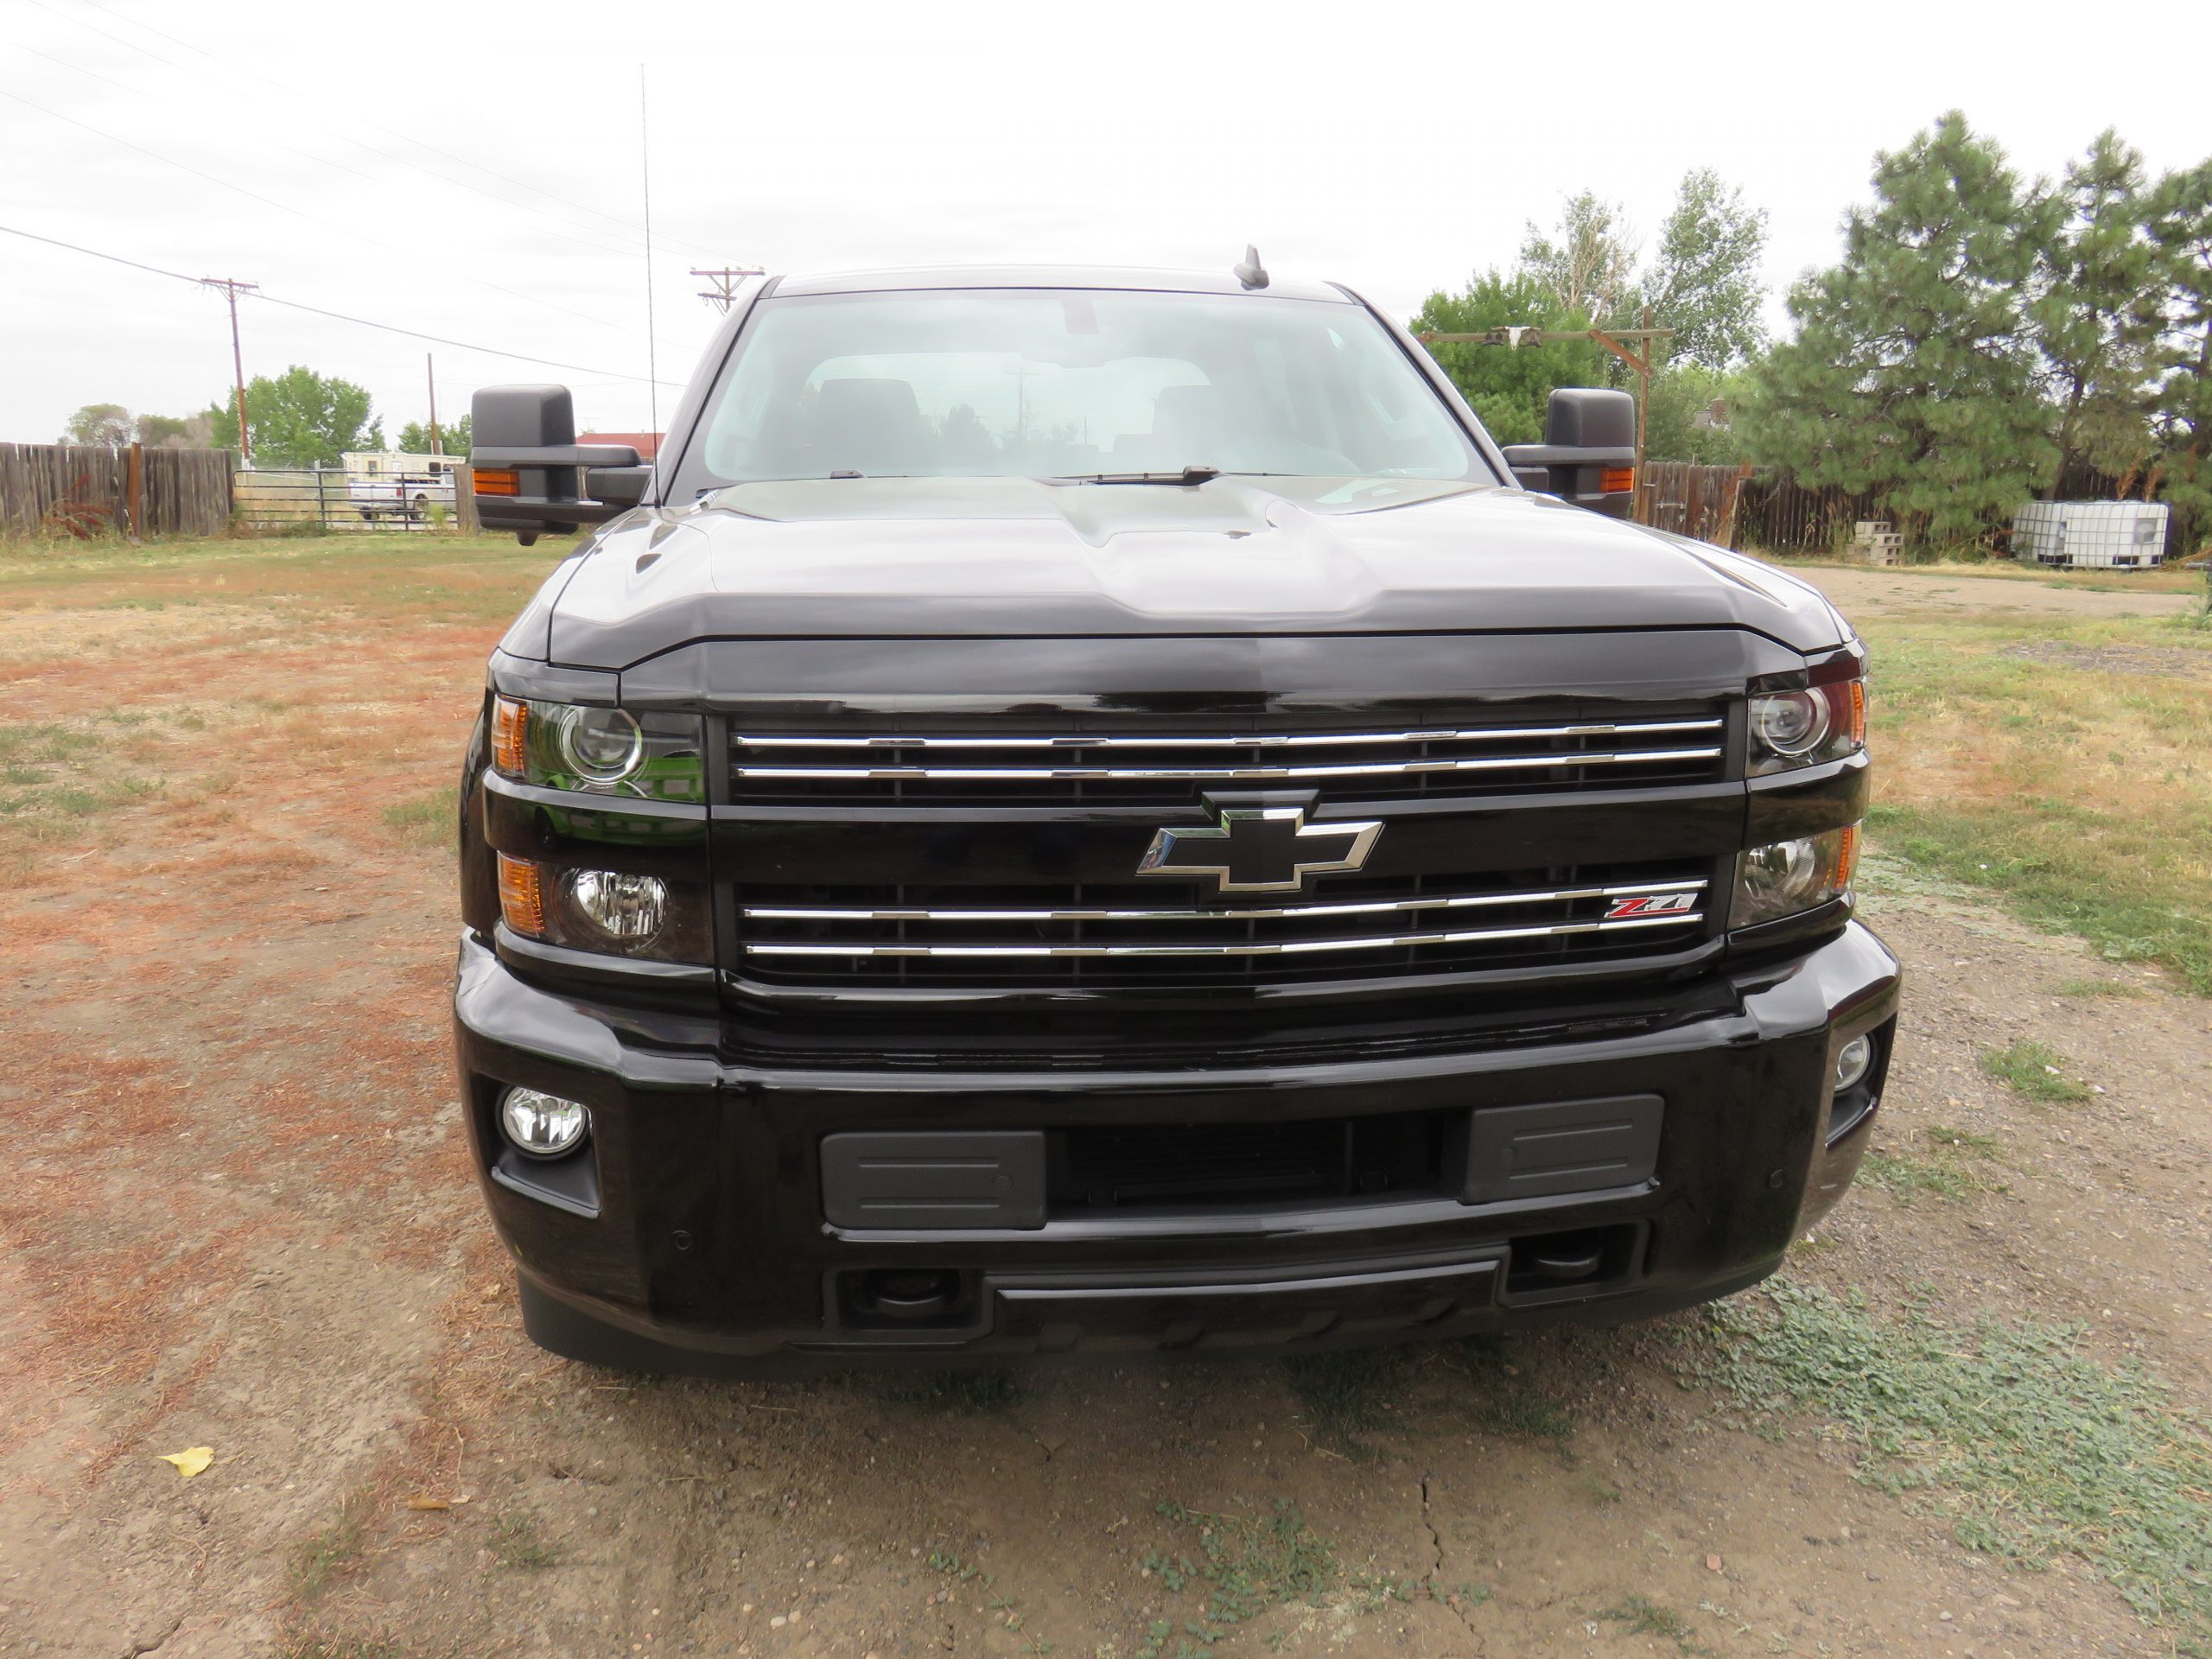 chevrolet review chevy silverado duramax diesel engine